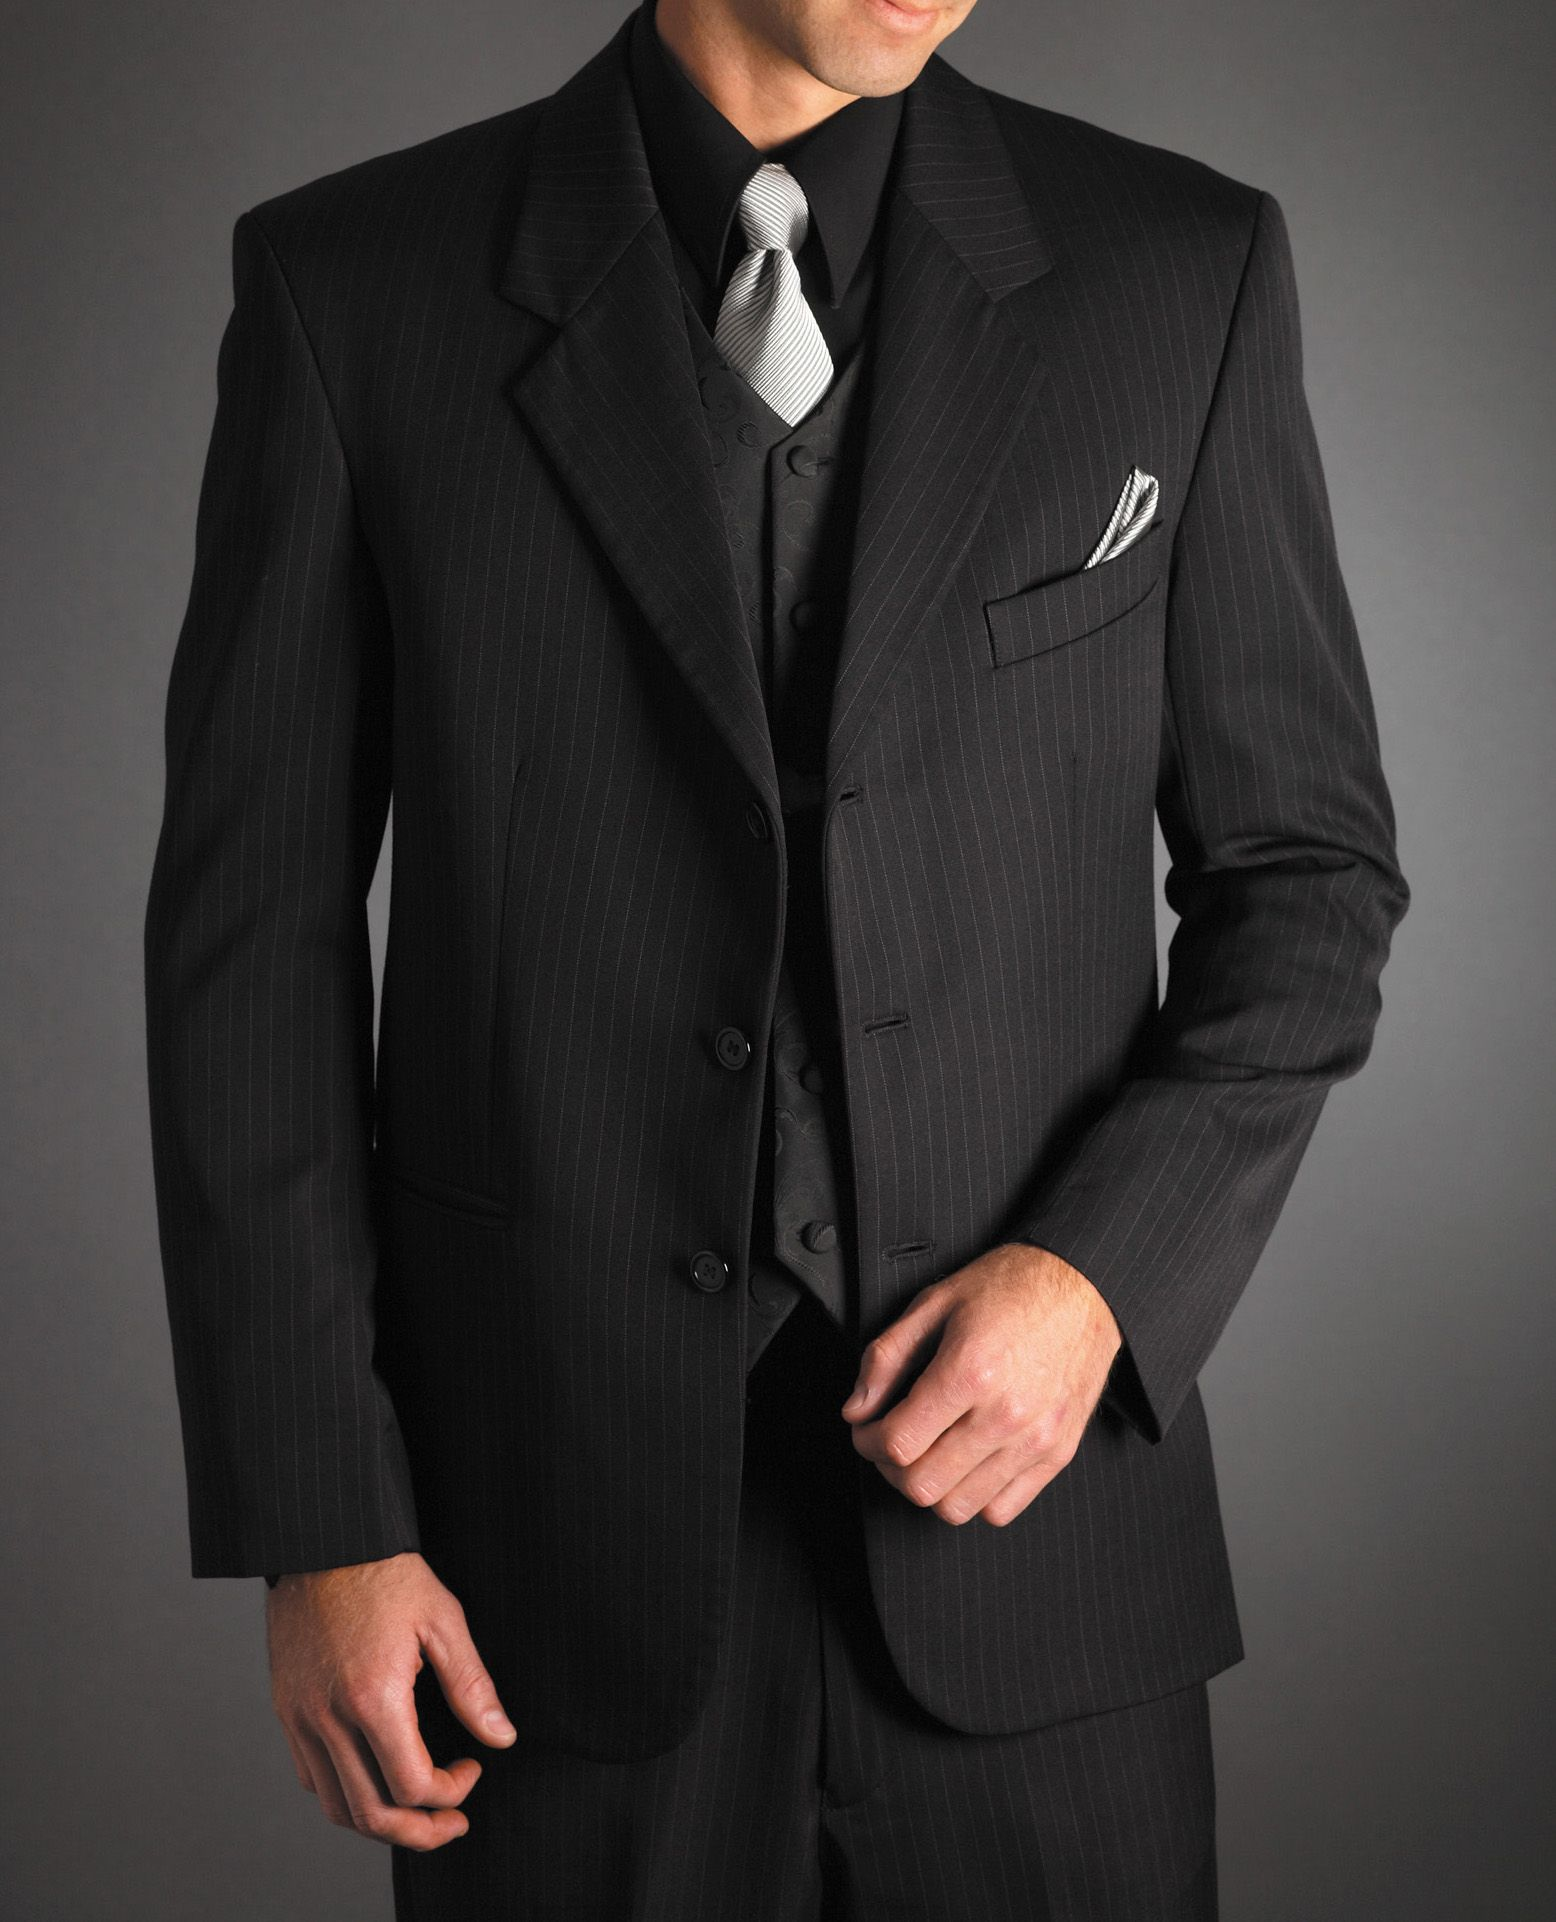 Black Suit Vest And Silver Tie With Images Black Suit Black